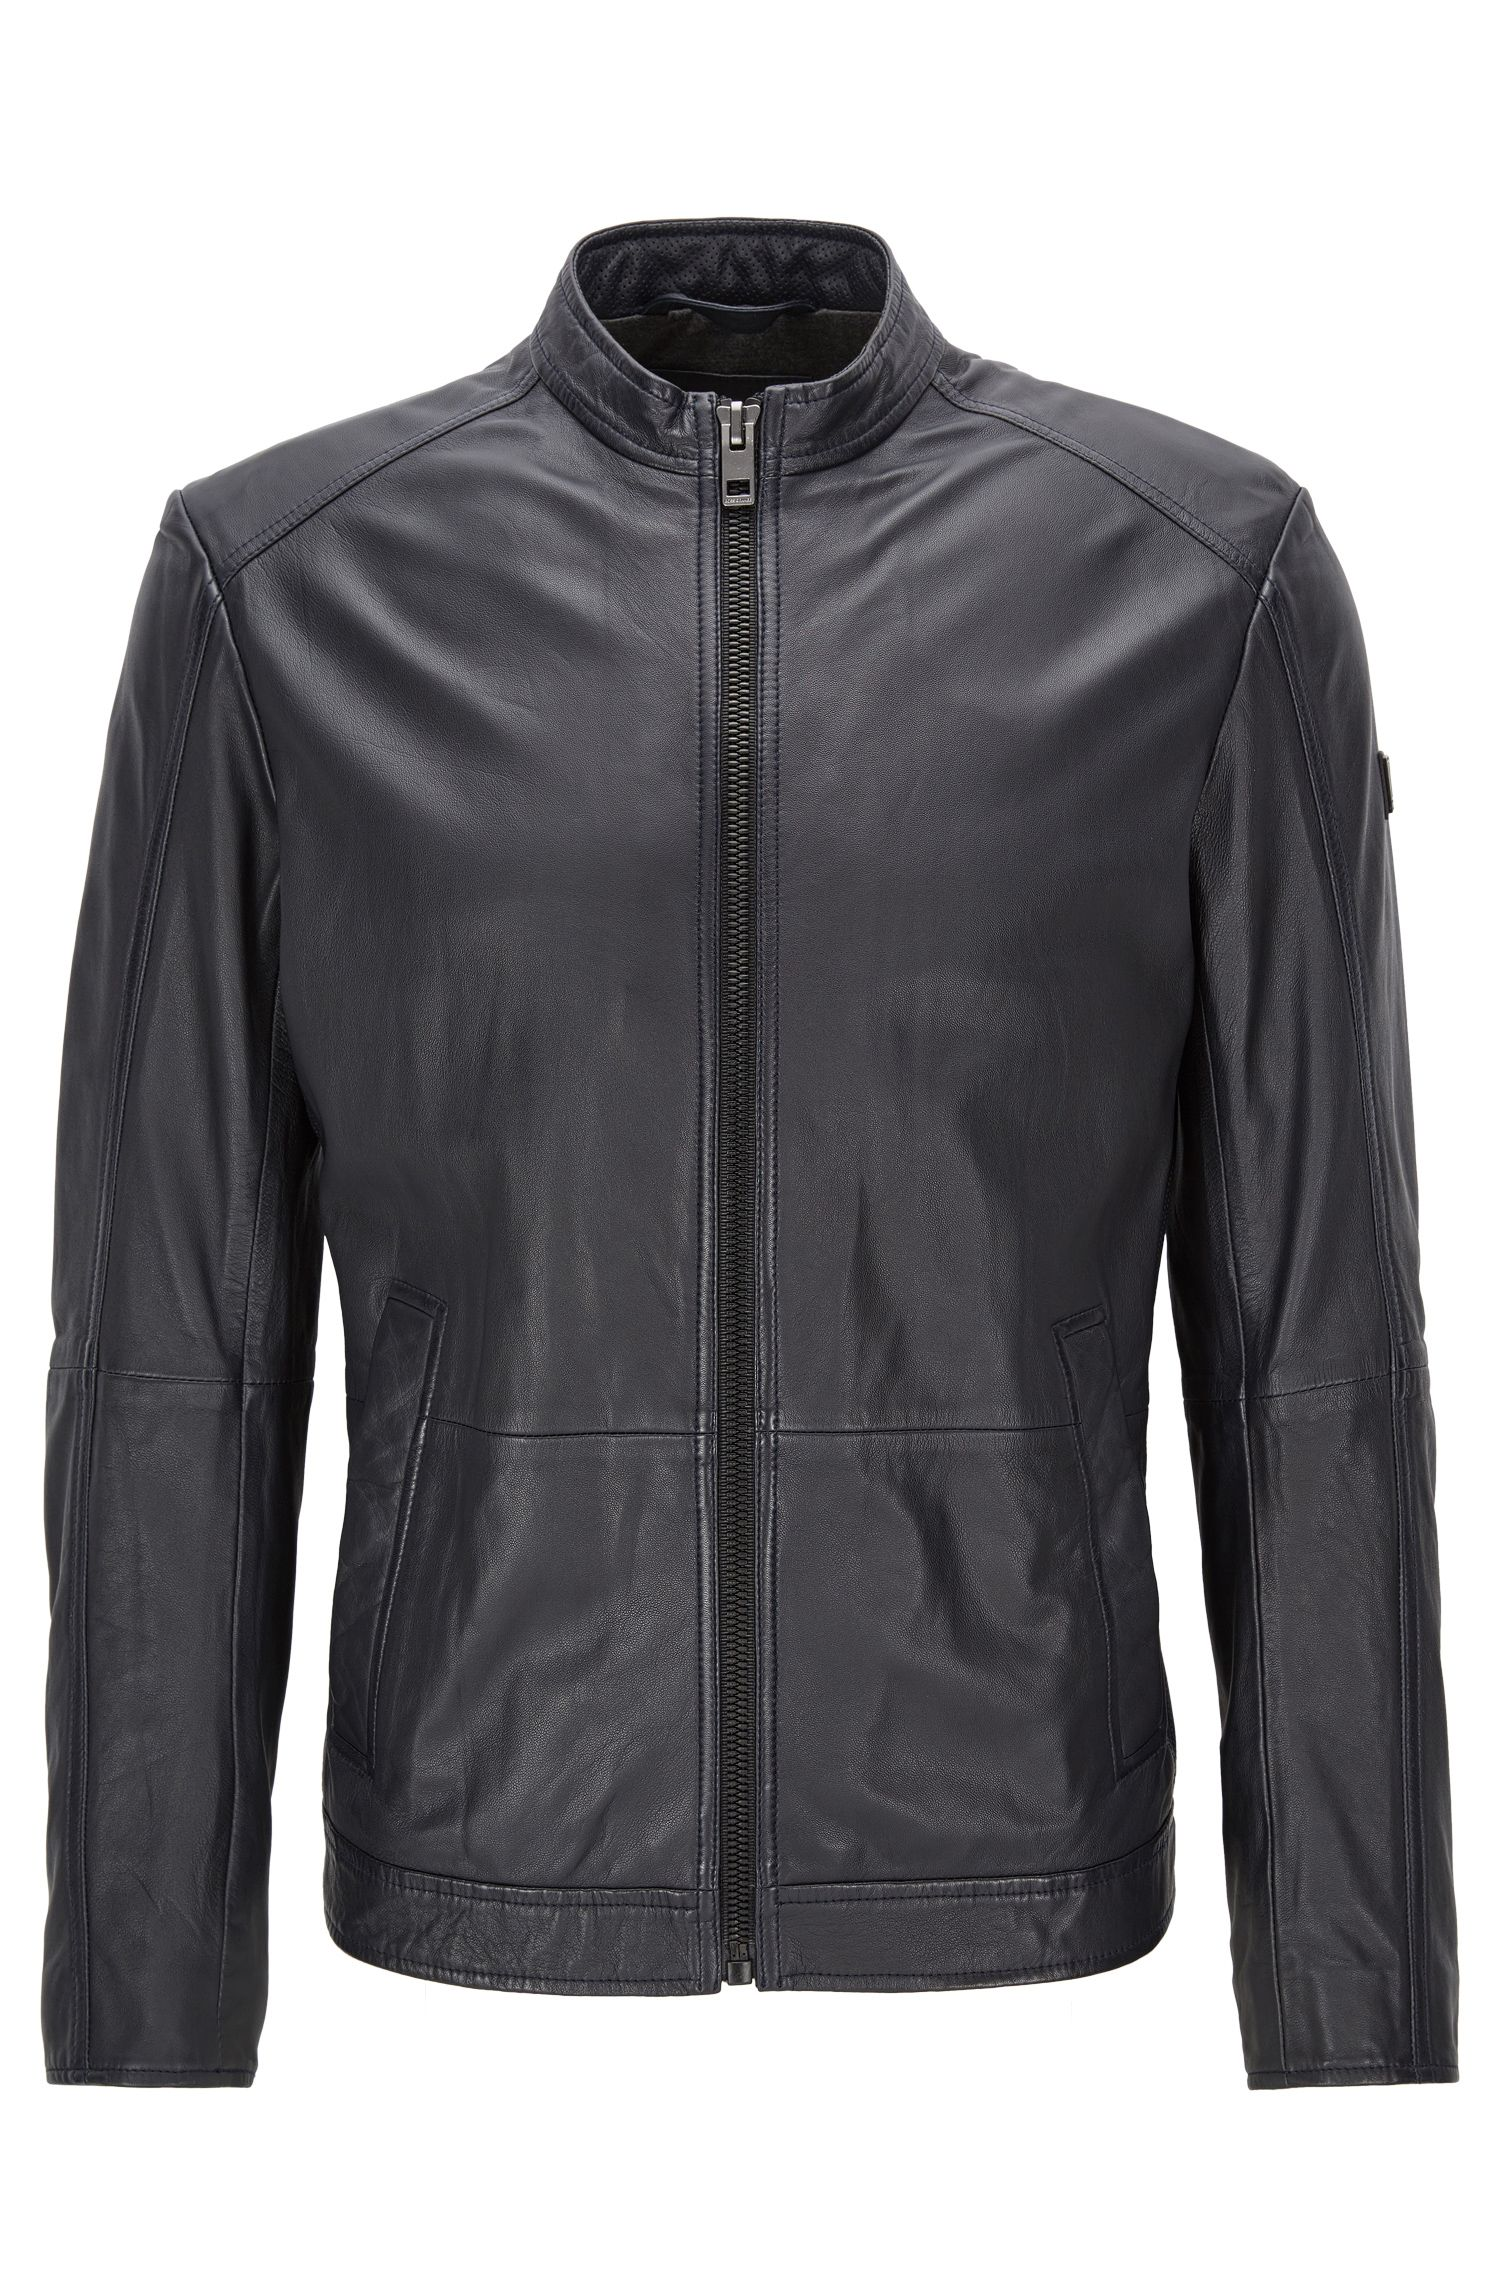 Slim-fit leather jacket with stand collar